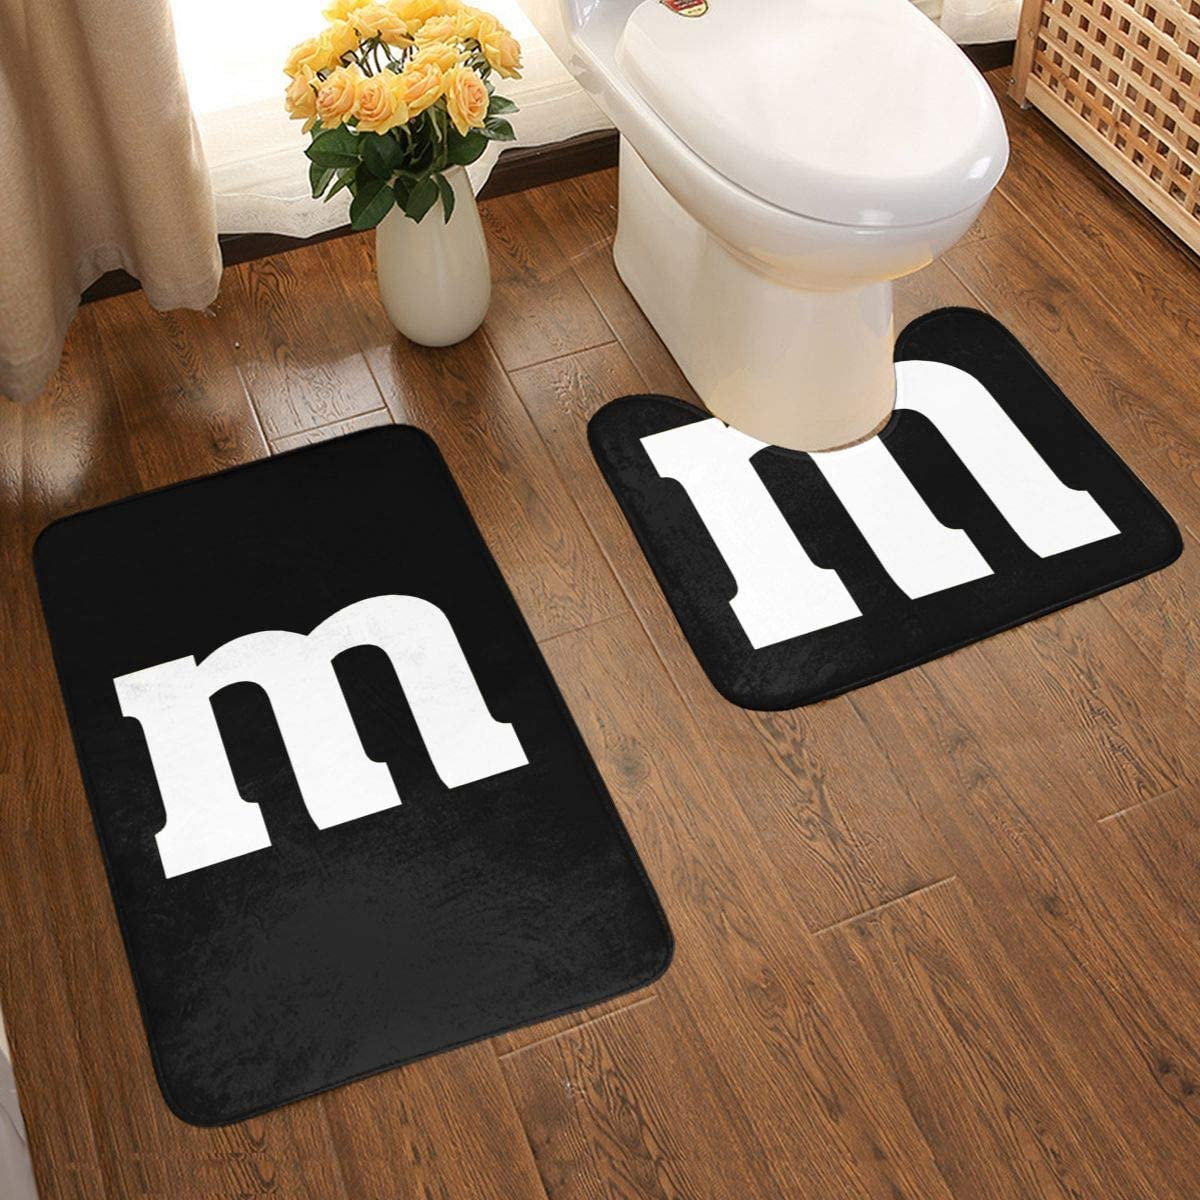 1763 Colorful M Candy Halloween Two Sets of Bathroom Mats (50x80cm)